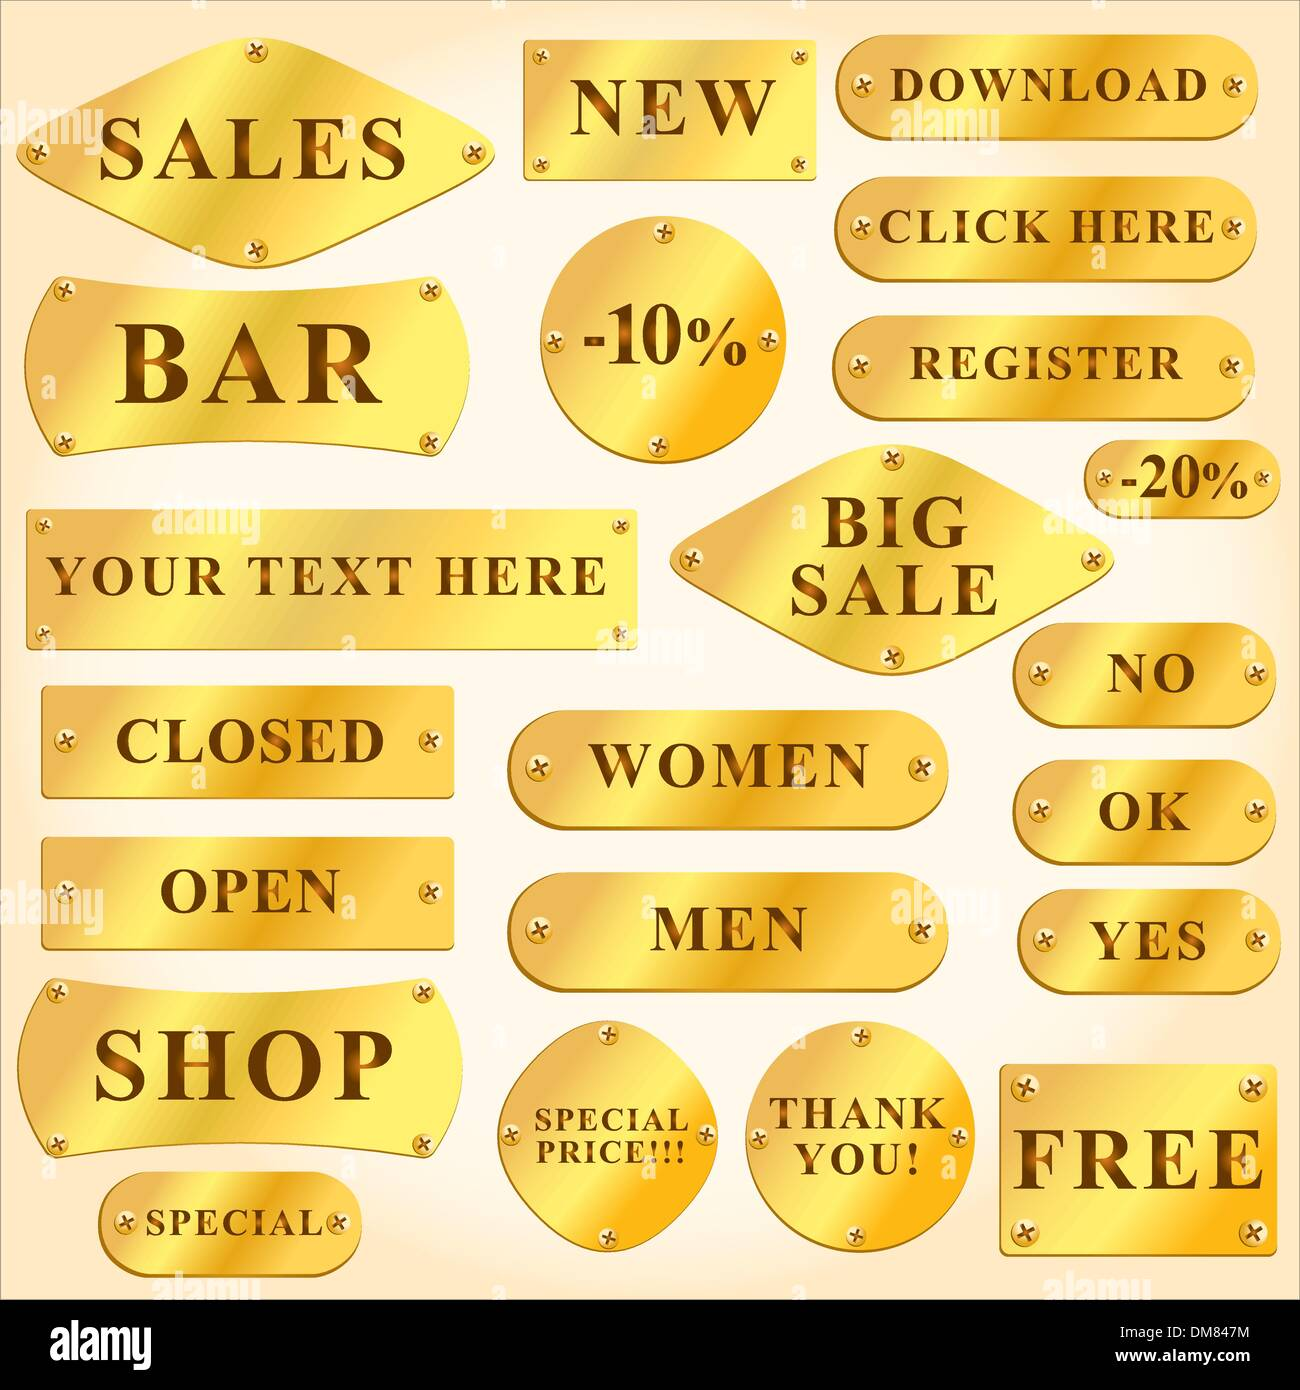 Vector Old golden and signboards with text and symbols - Stock Image